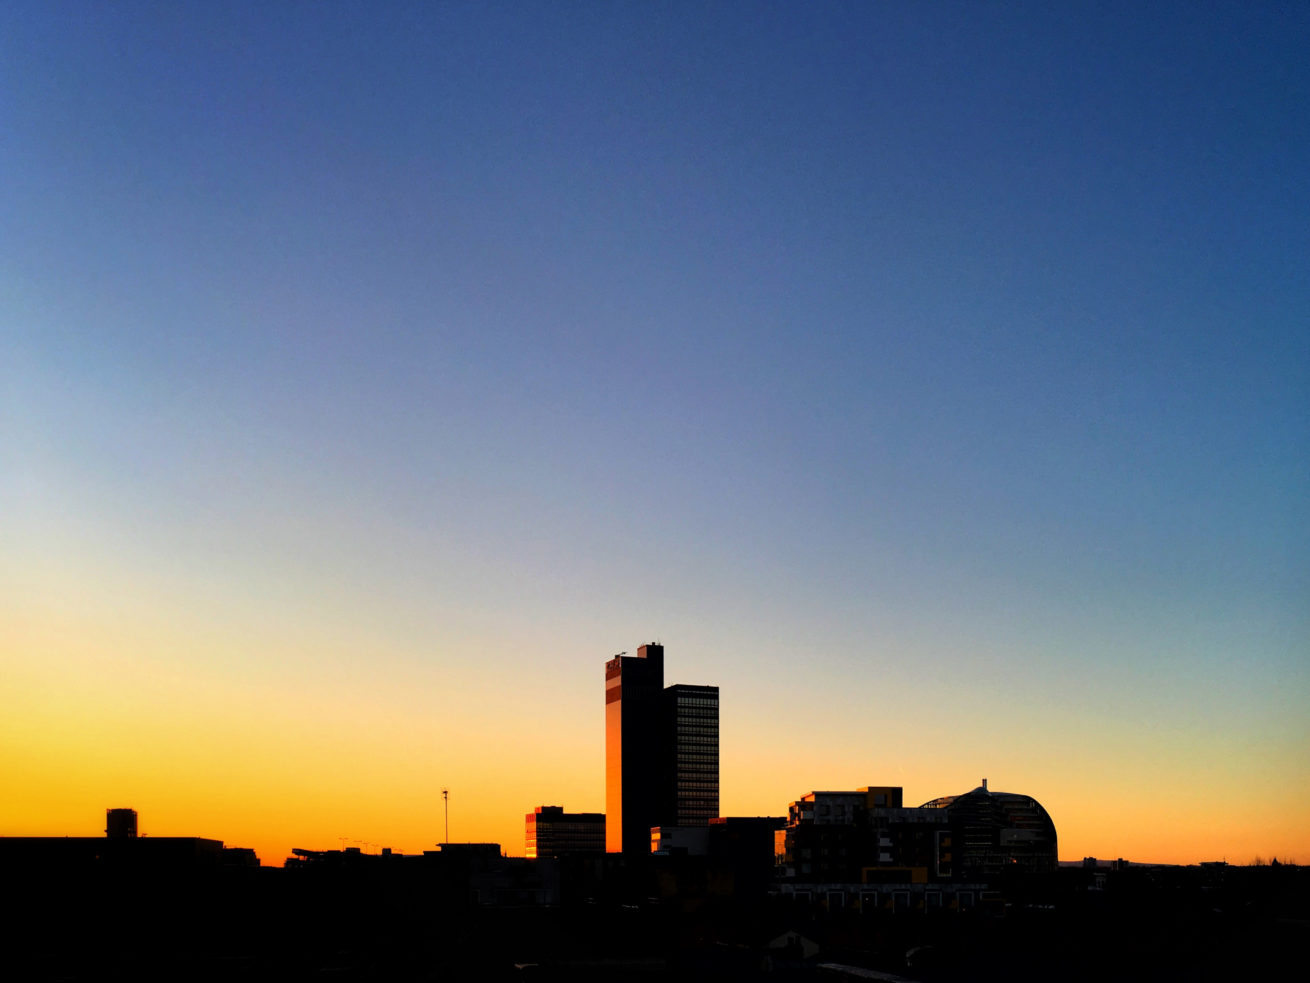 CIS TOWER, MANCHESTER, DAWN